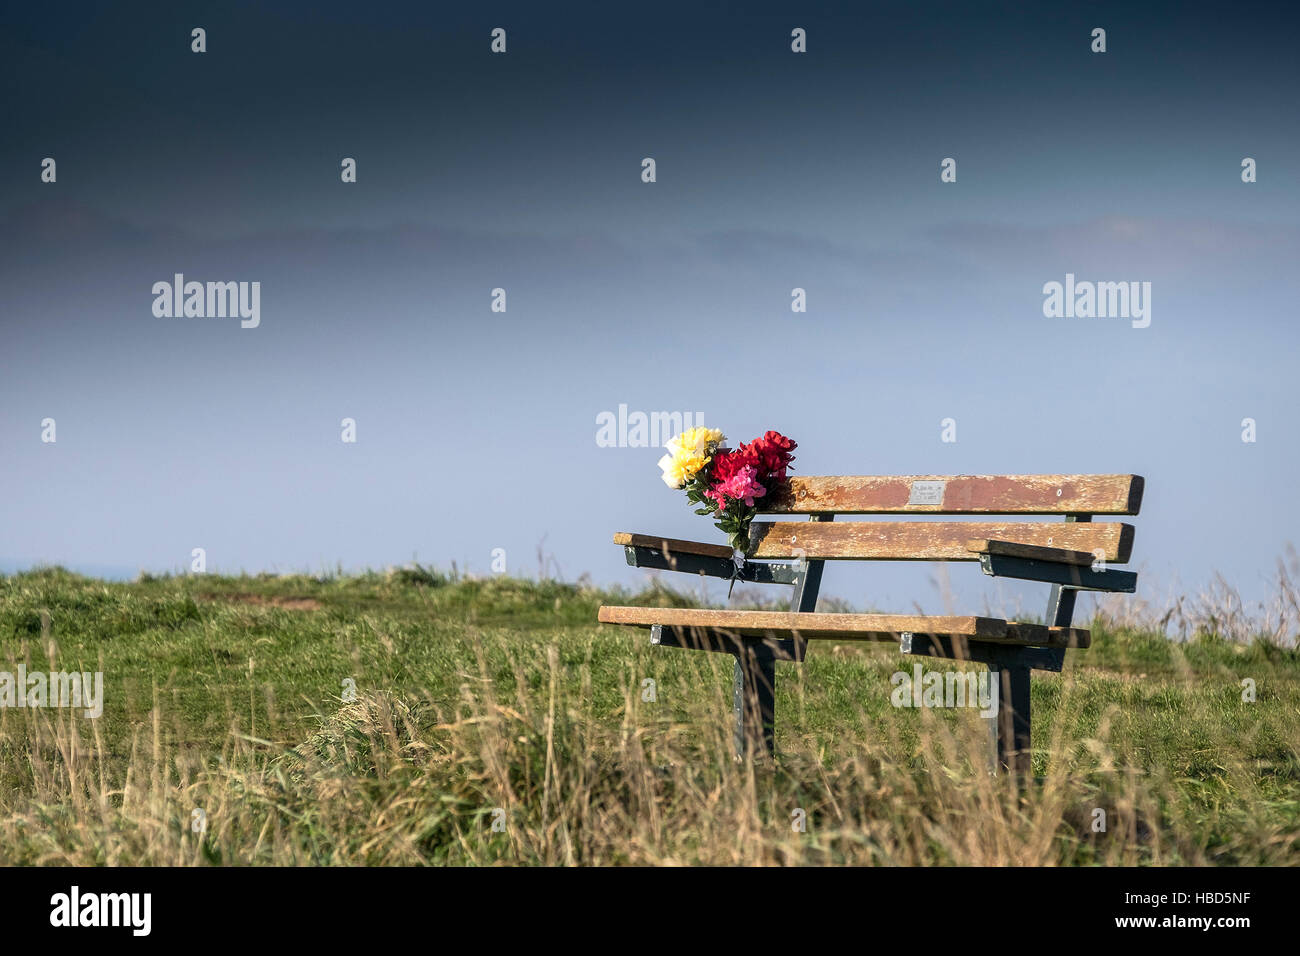 Flowers left on a memorial bench in Newquay, Cornwall. - Stock Image